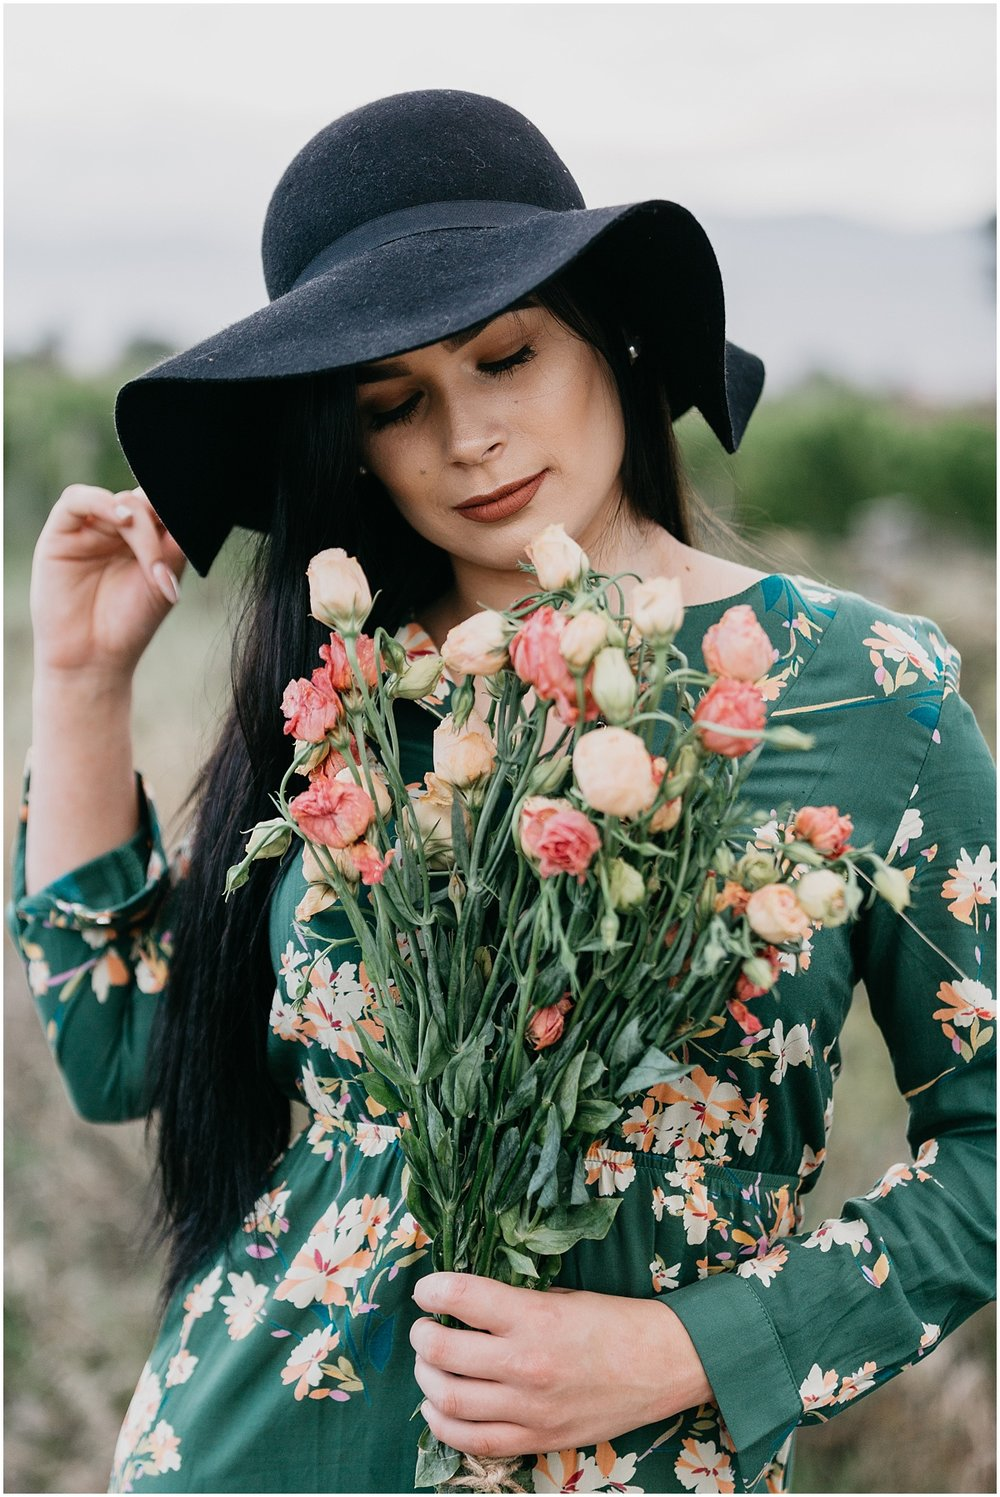 Woman in black hat deep in thought holding bouquet of flowers